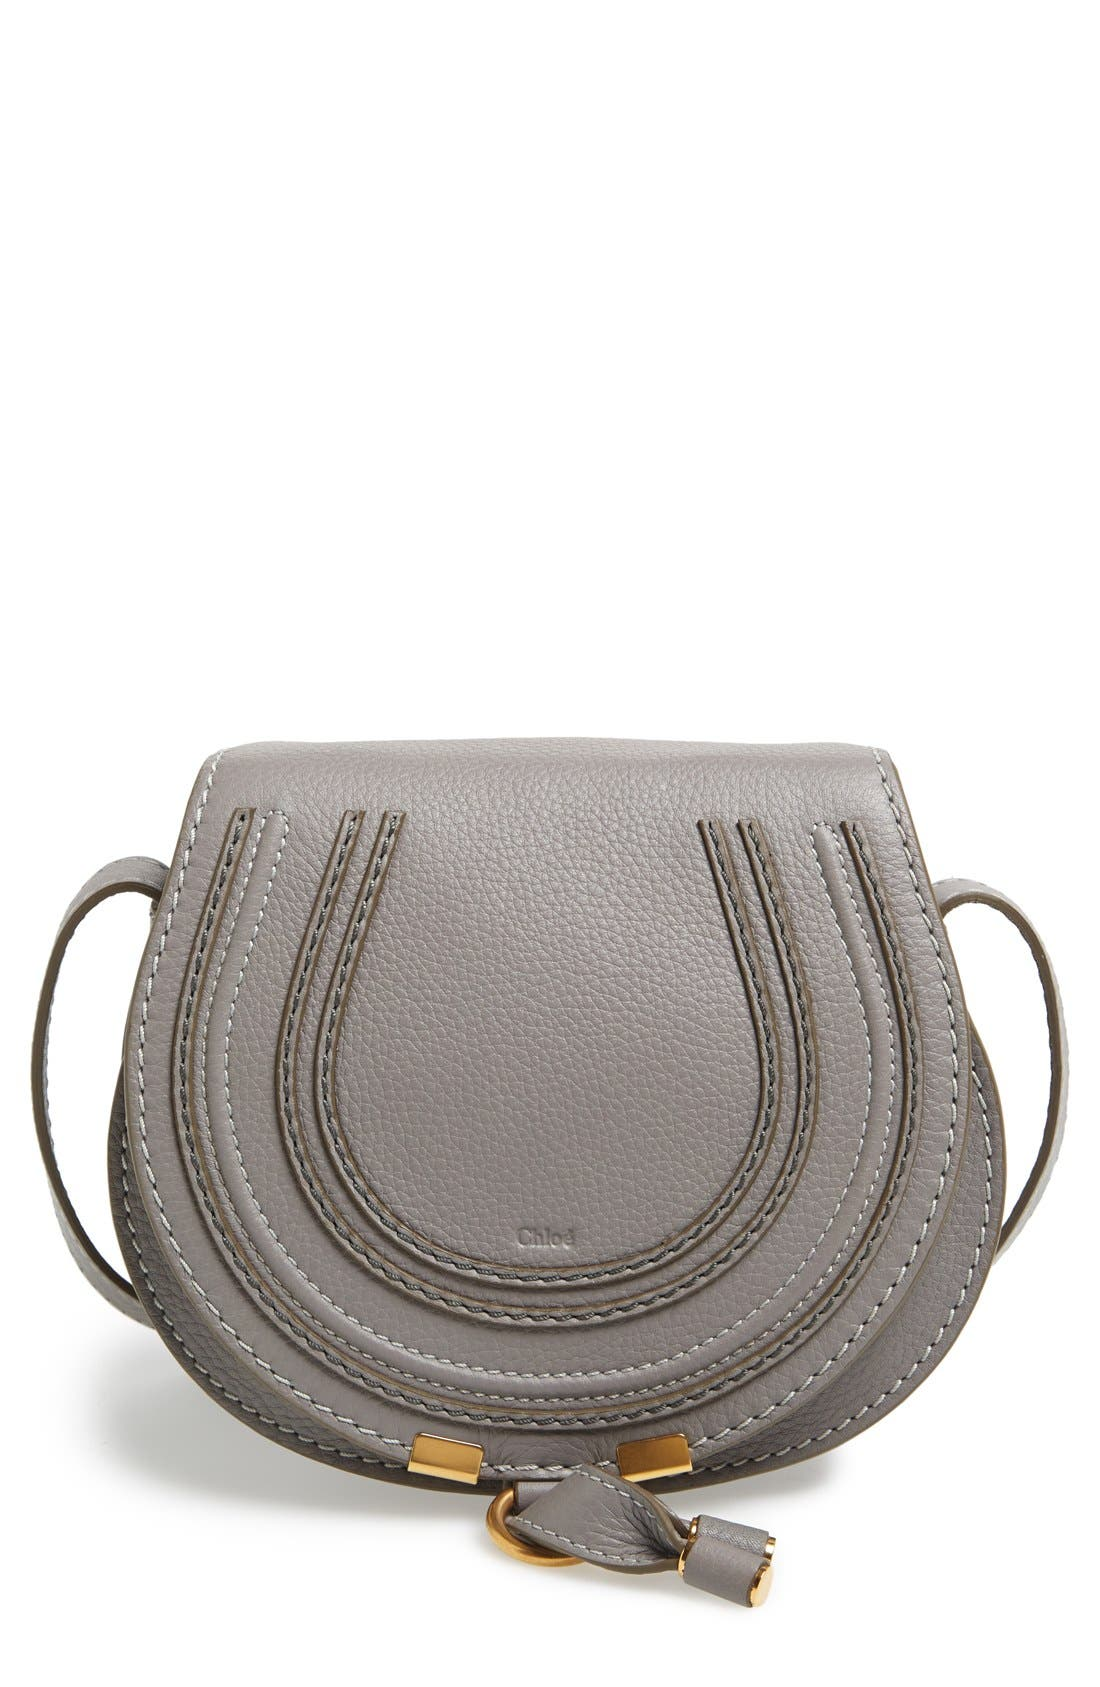 'Mini Marcie' Leather Crossbody Bag,                         Main,                         color, CASHMERE GREY